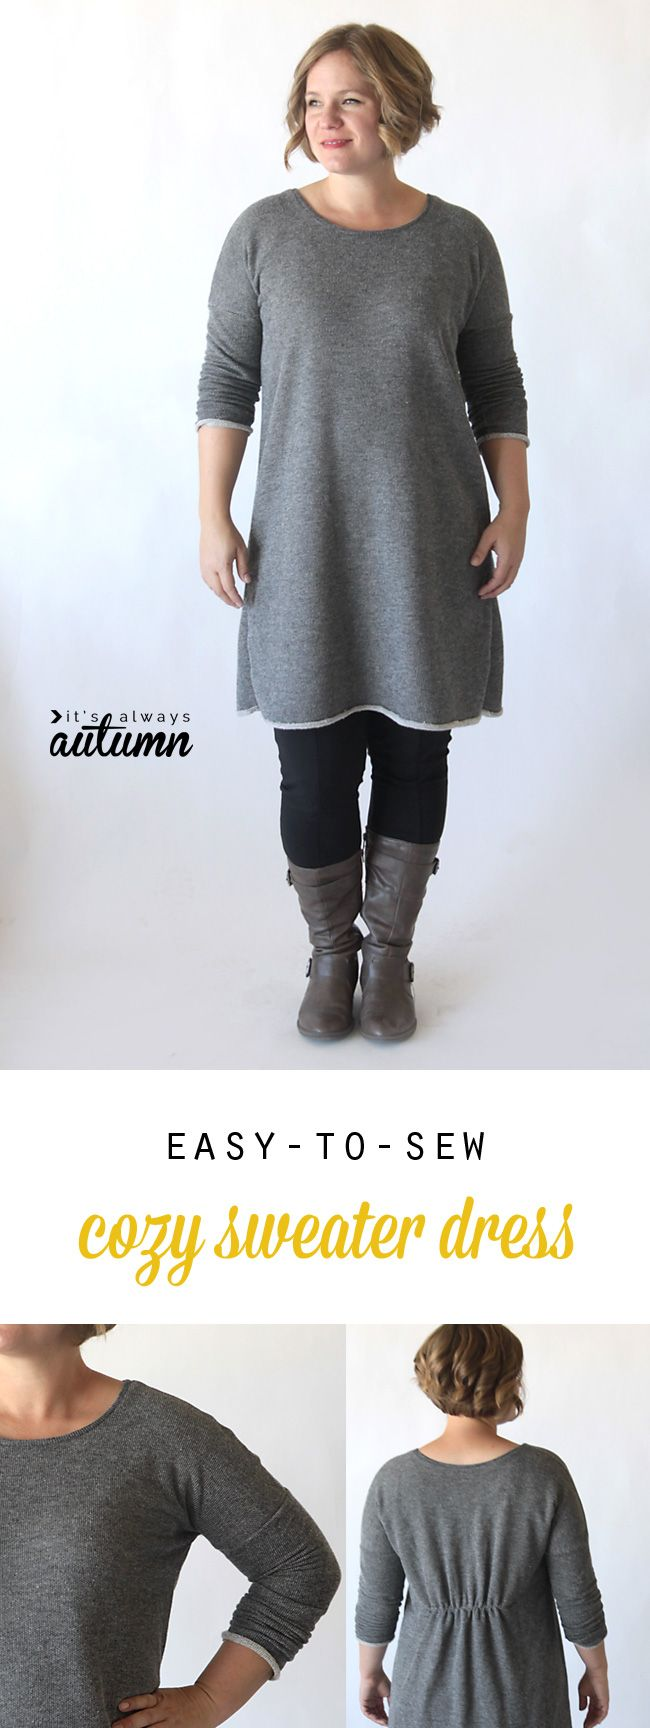 Learn how to sew this cute, easy to make DIY sweater dress or tunic with a sewing tutorial * YEEES !!! lang und warm oder kurz und kurz im sommer, SM selber zeichen, hipphipp <3